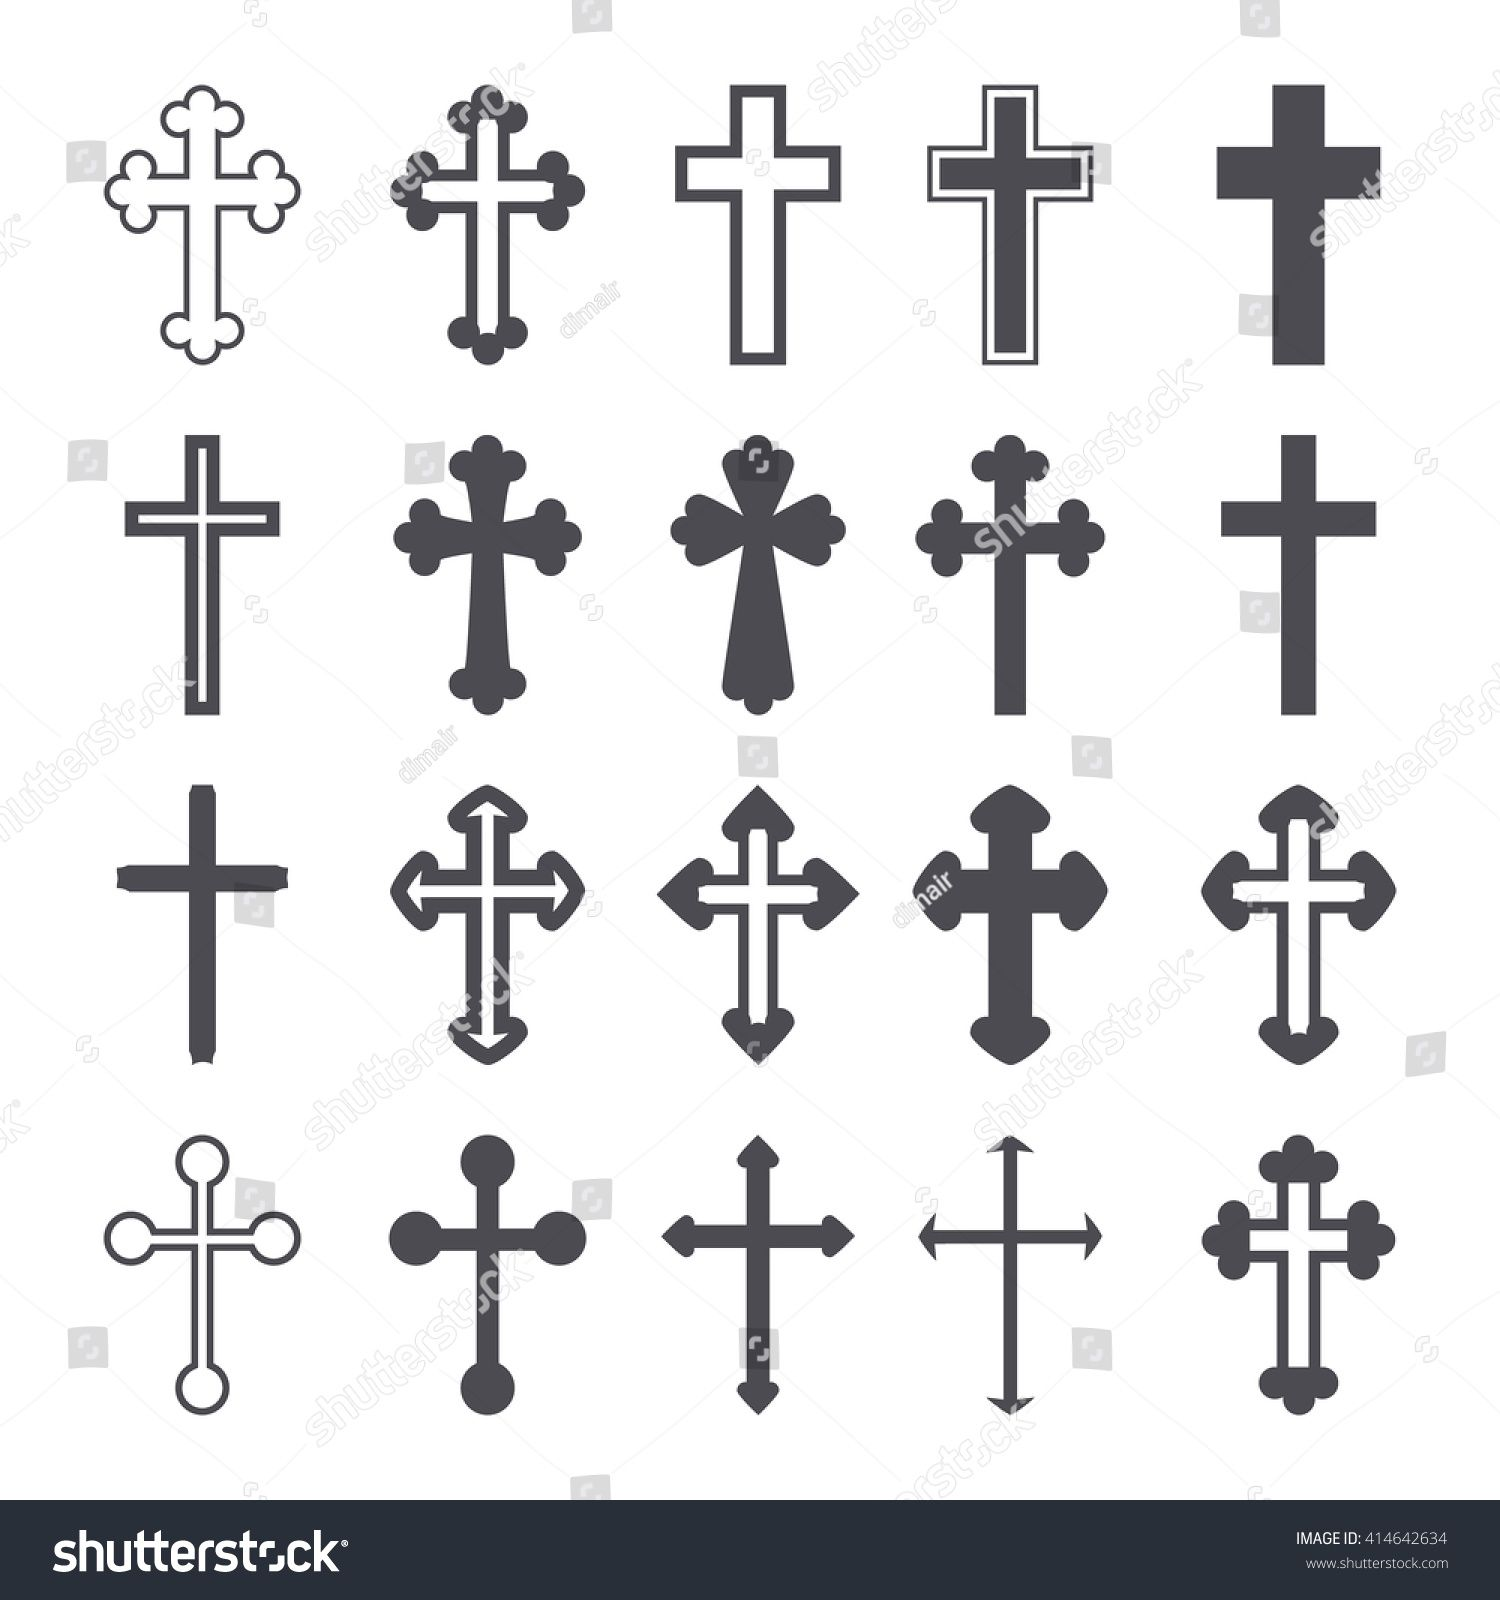 Cross icons set. Decorated crosses signs or symbols. Vector illustration |  Tatuaje de cruz con alas, Conjunto de iconos, Patrones de cruz